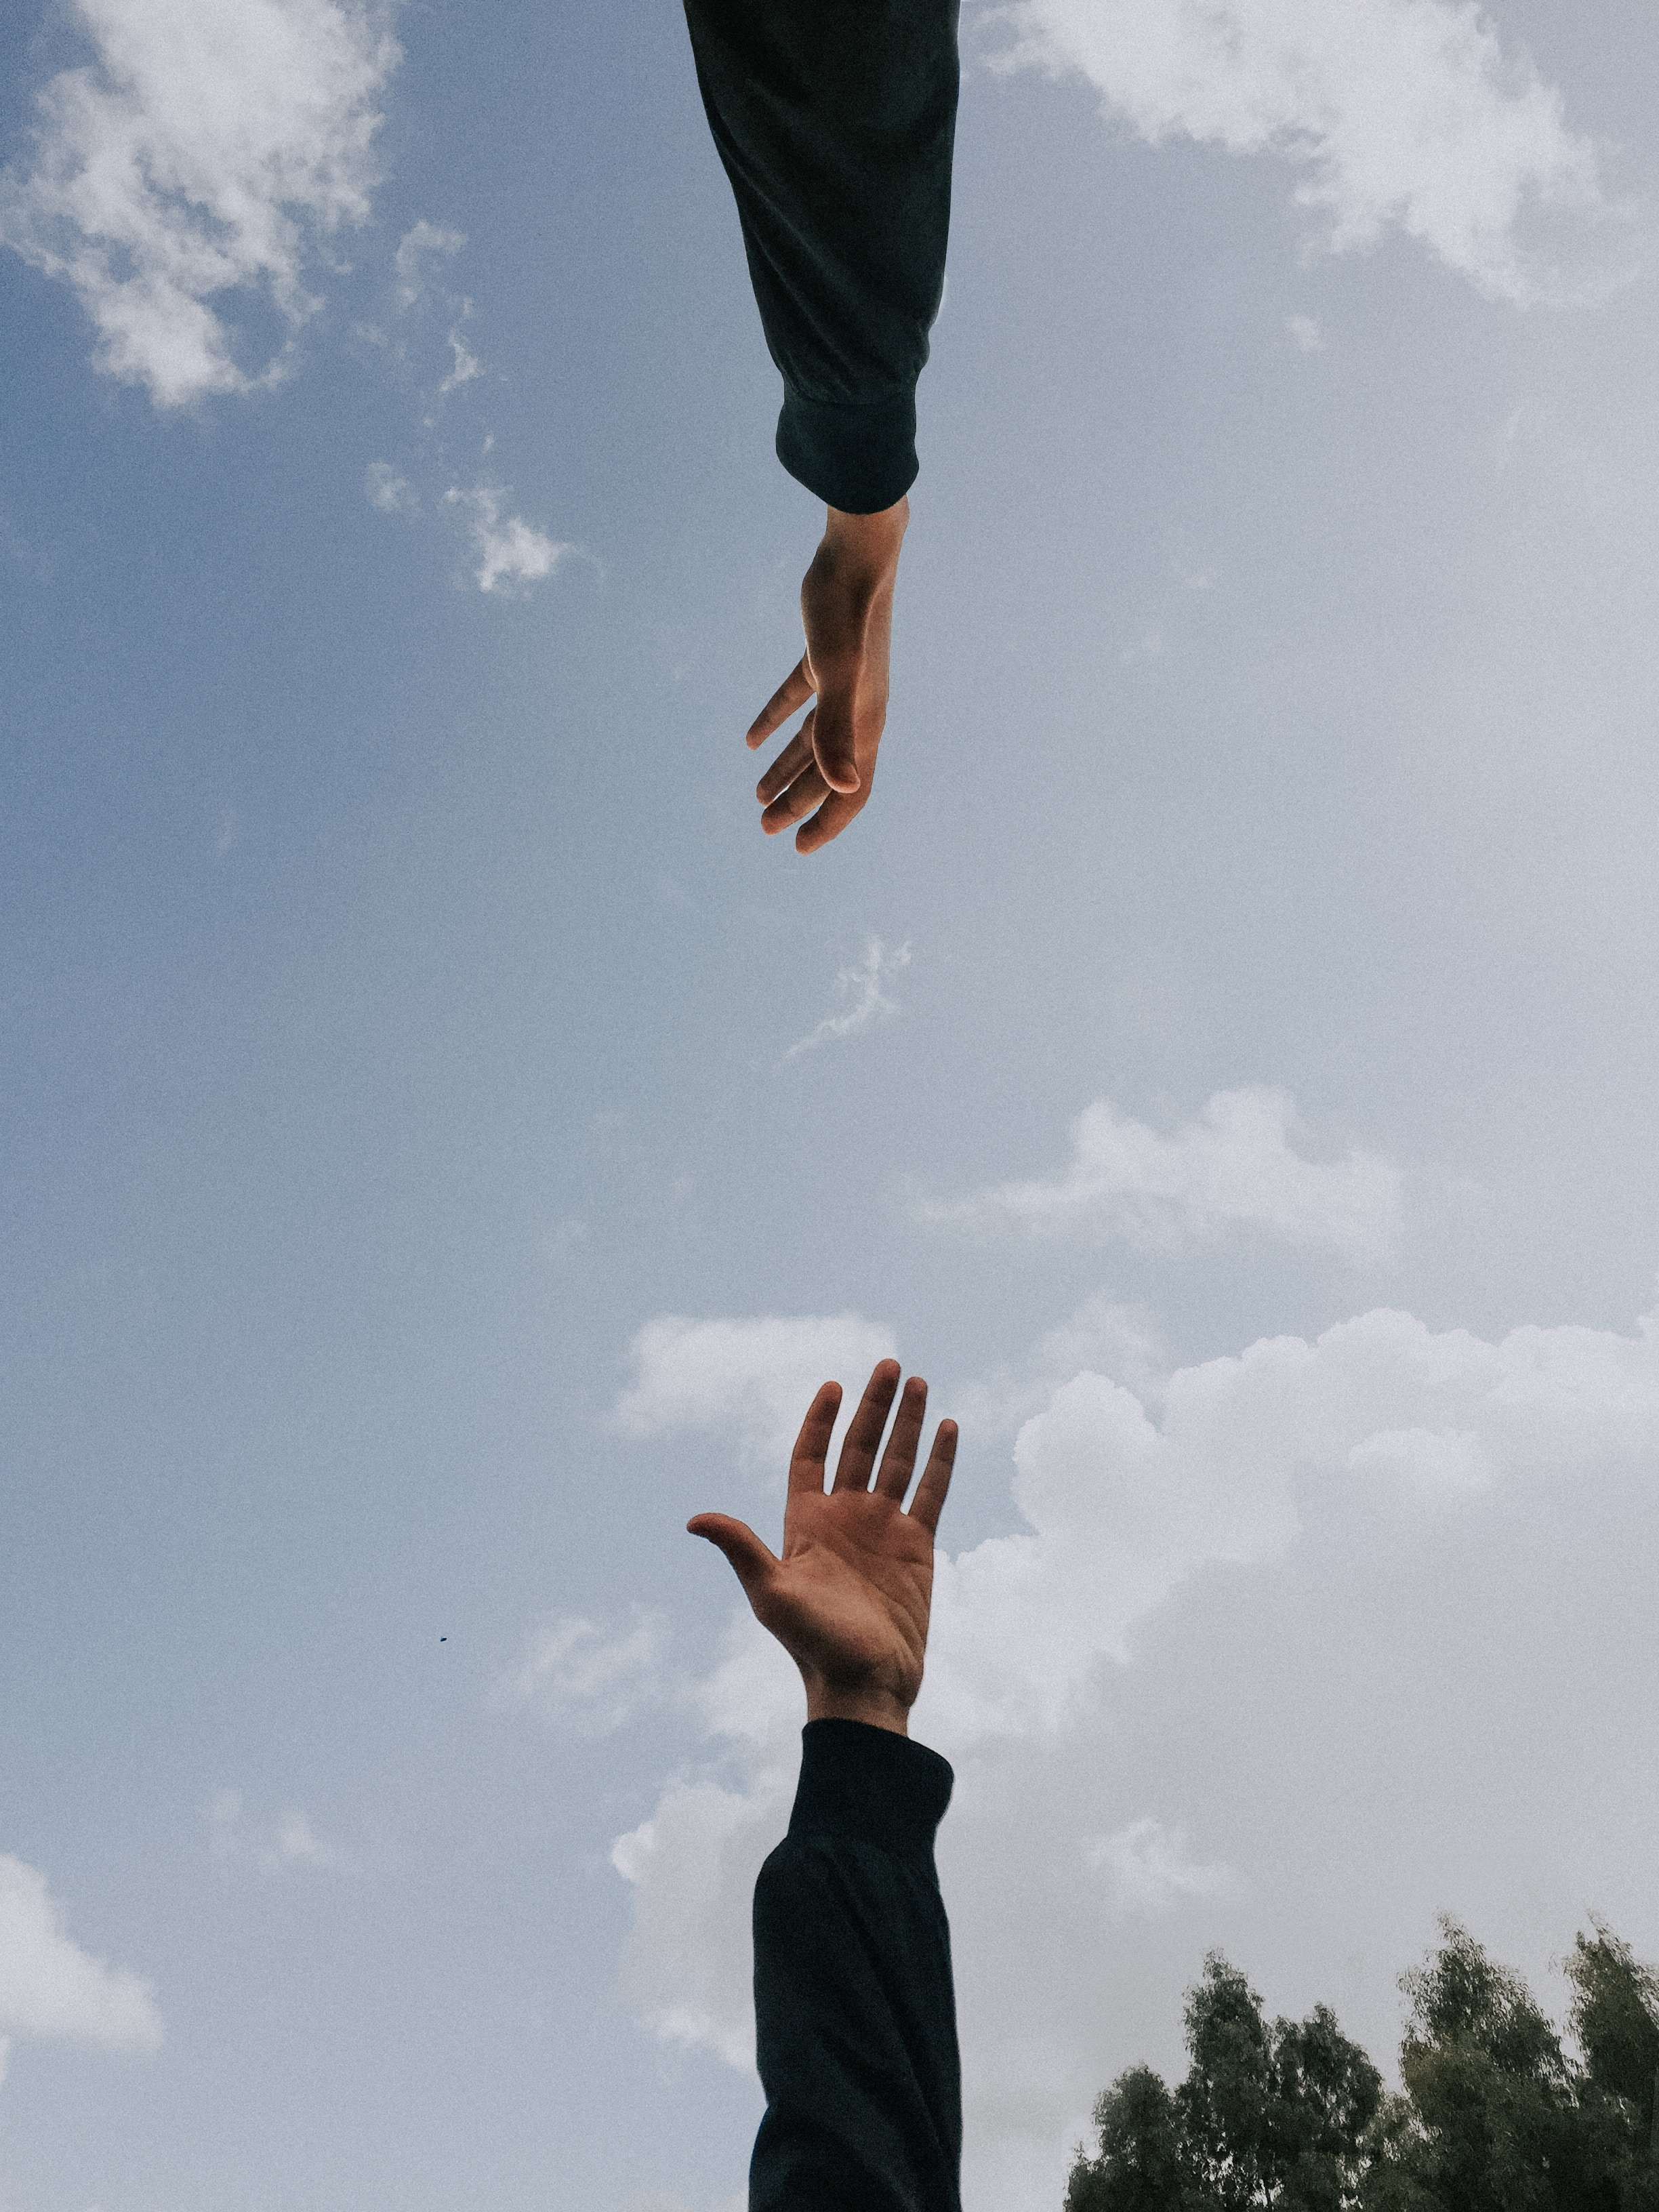 Two hands letting go | Source: Unsplash.com